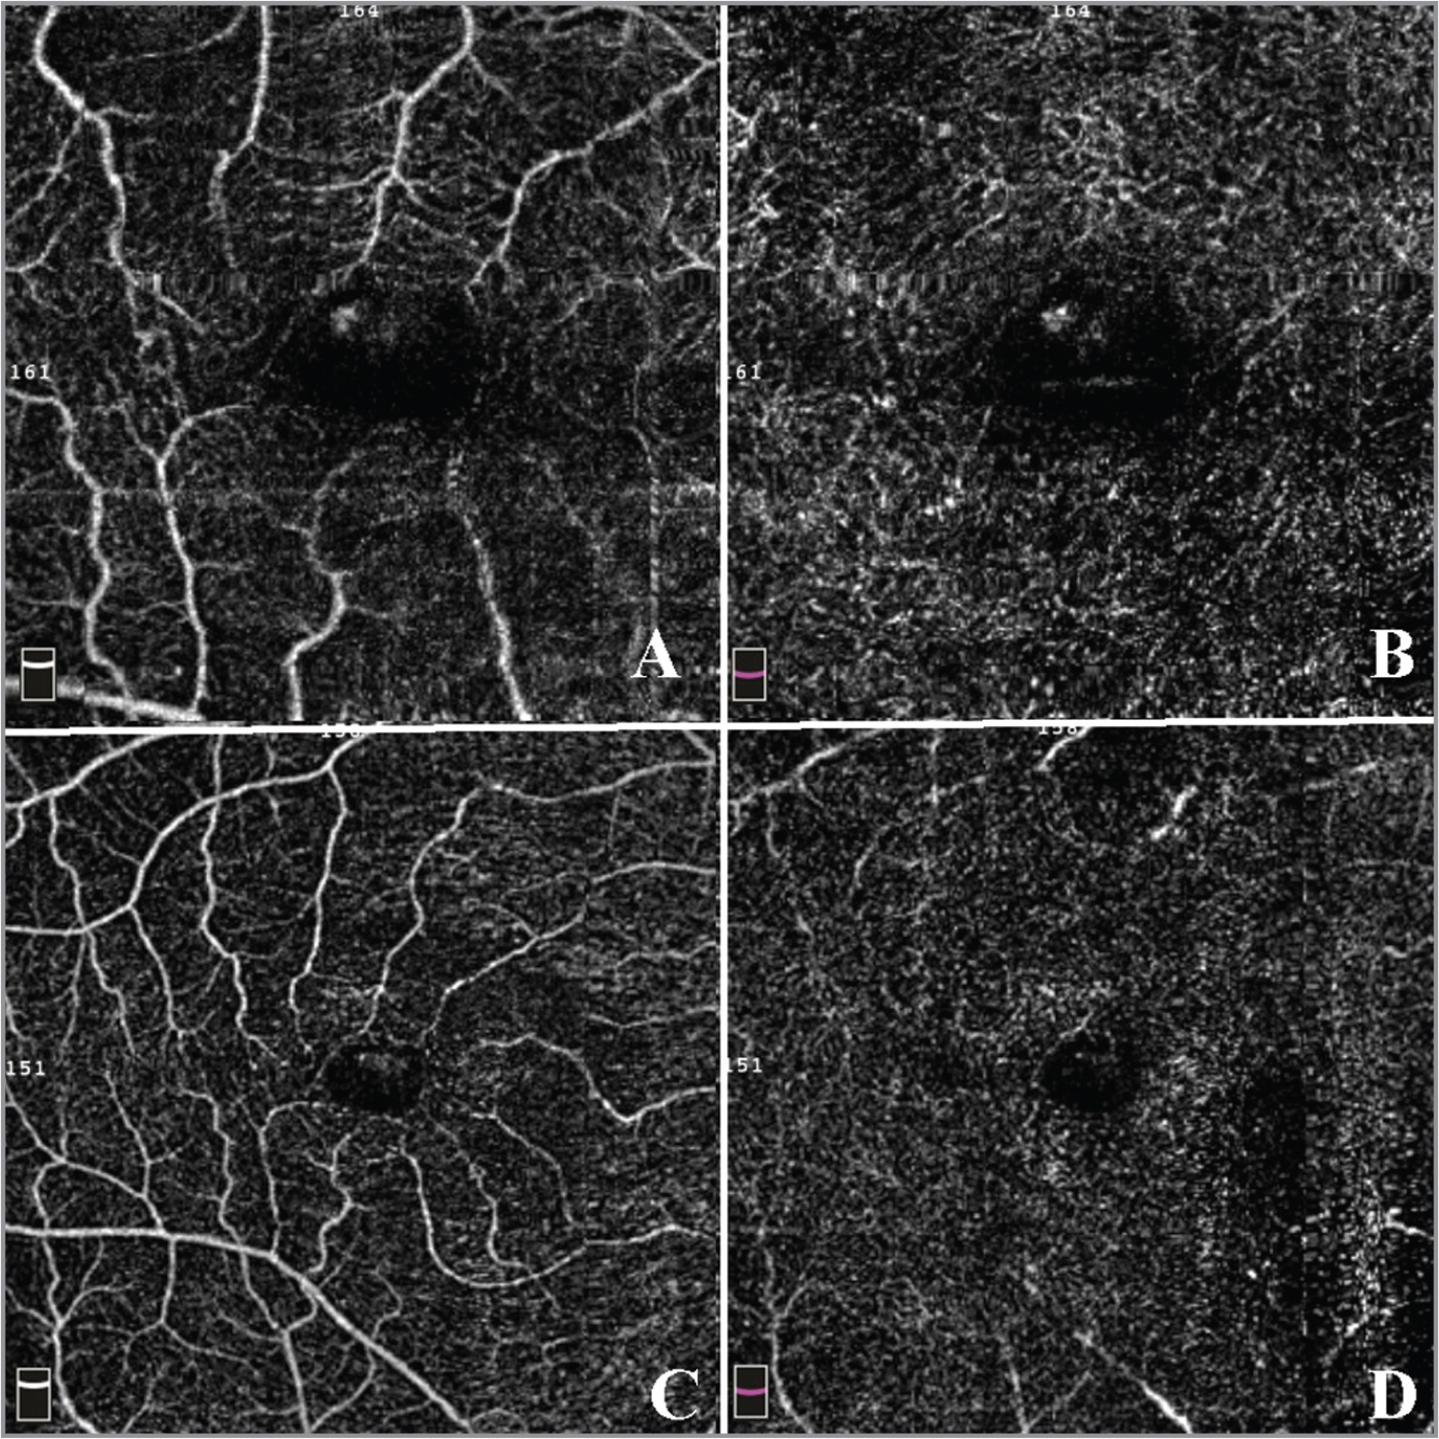 En face optical coherence tomography example of patient with diabetes without retinopathy with no vascular abnormalities. (A) 3 × 3 superficial capillaries area. (B) 3 × 3 deep capillaries area. (C) 6 × 6 superficial capillaries area. (D) 6 × 6 deep capillaries area.